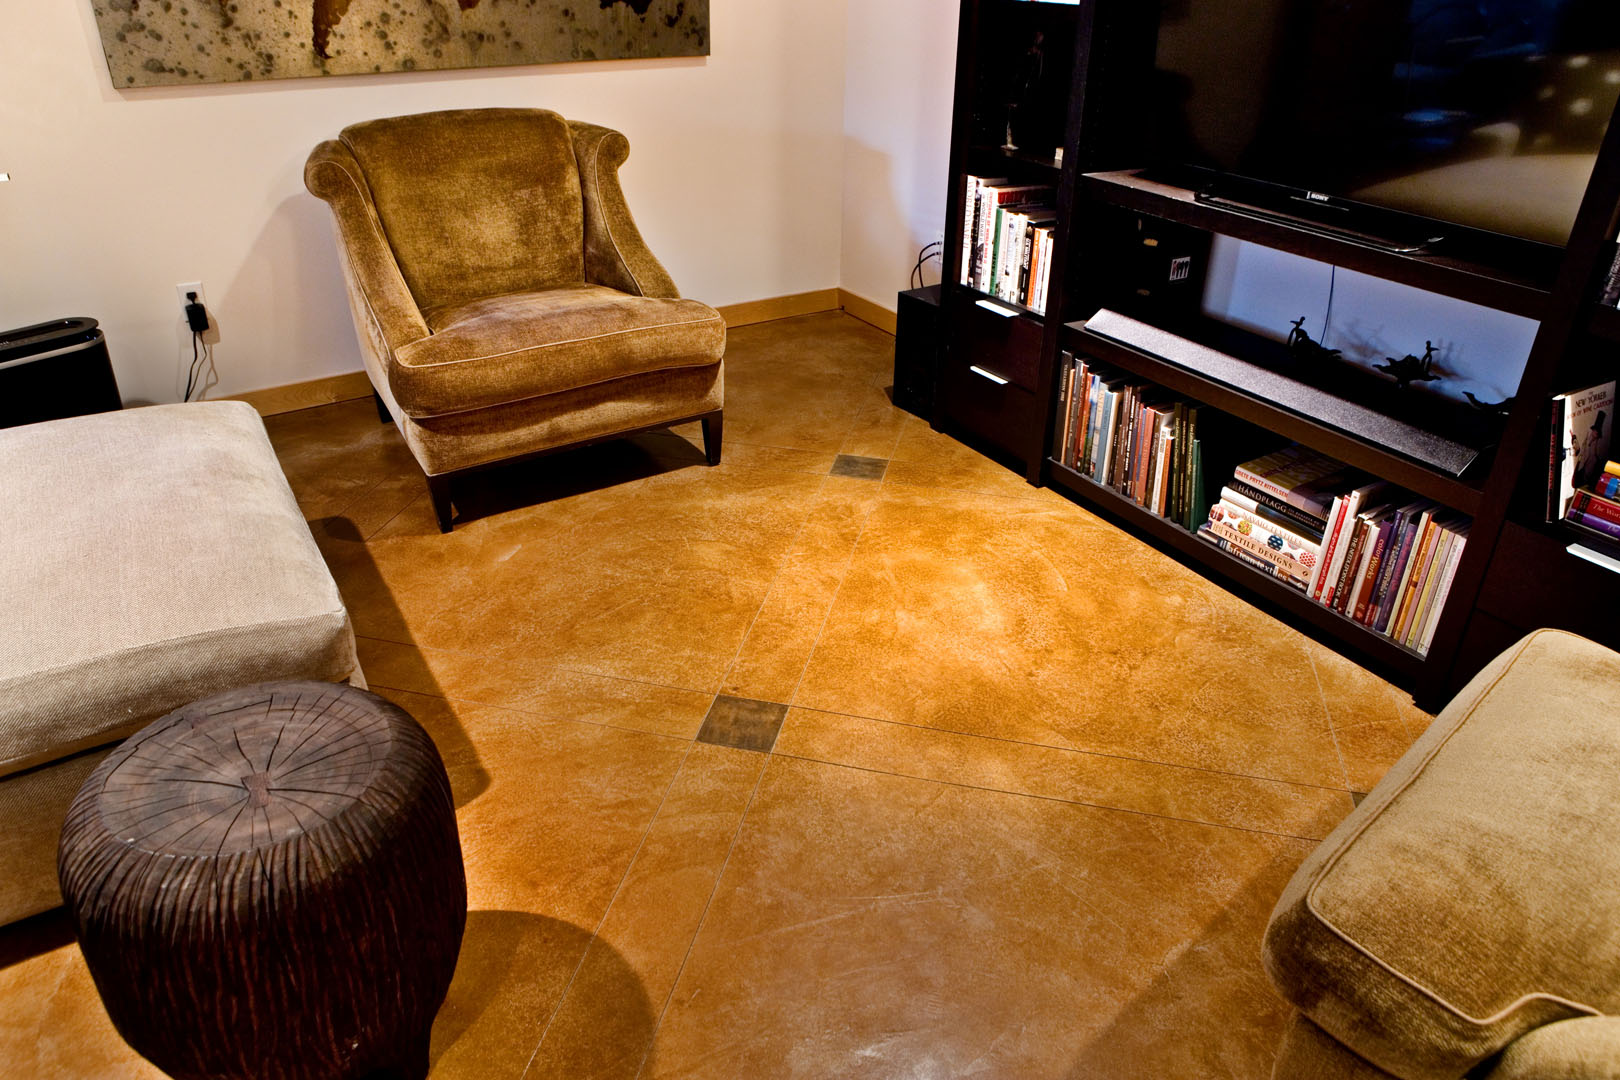 Decorative concrete floor photo